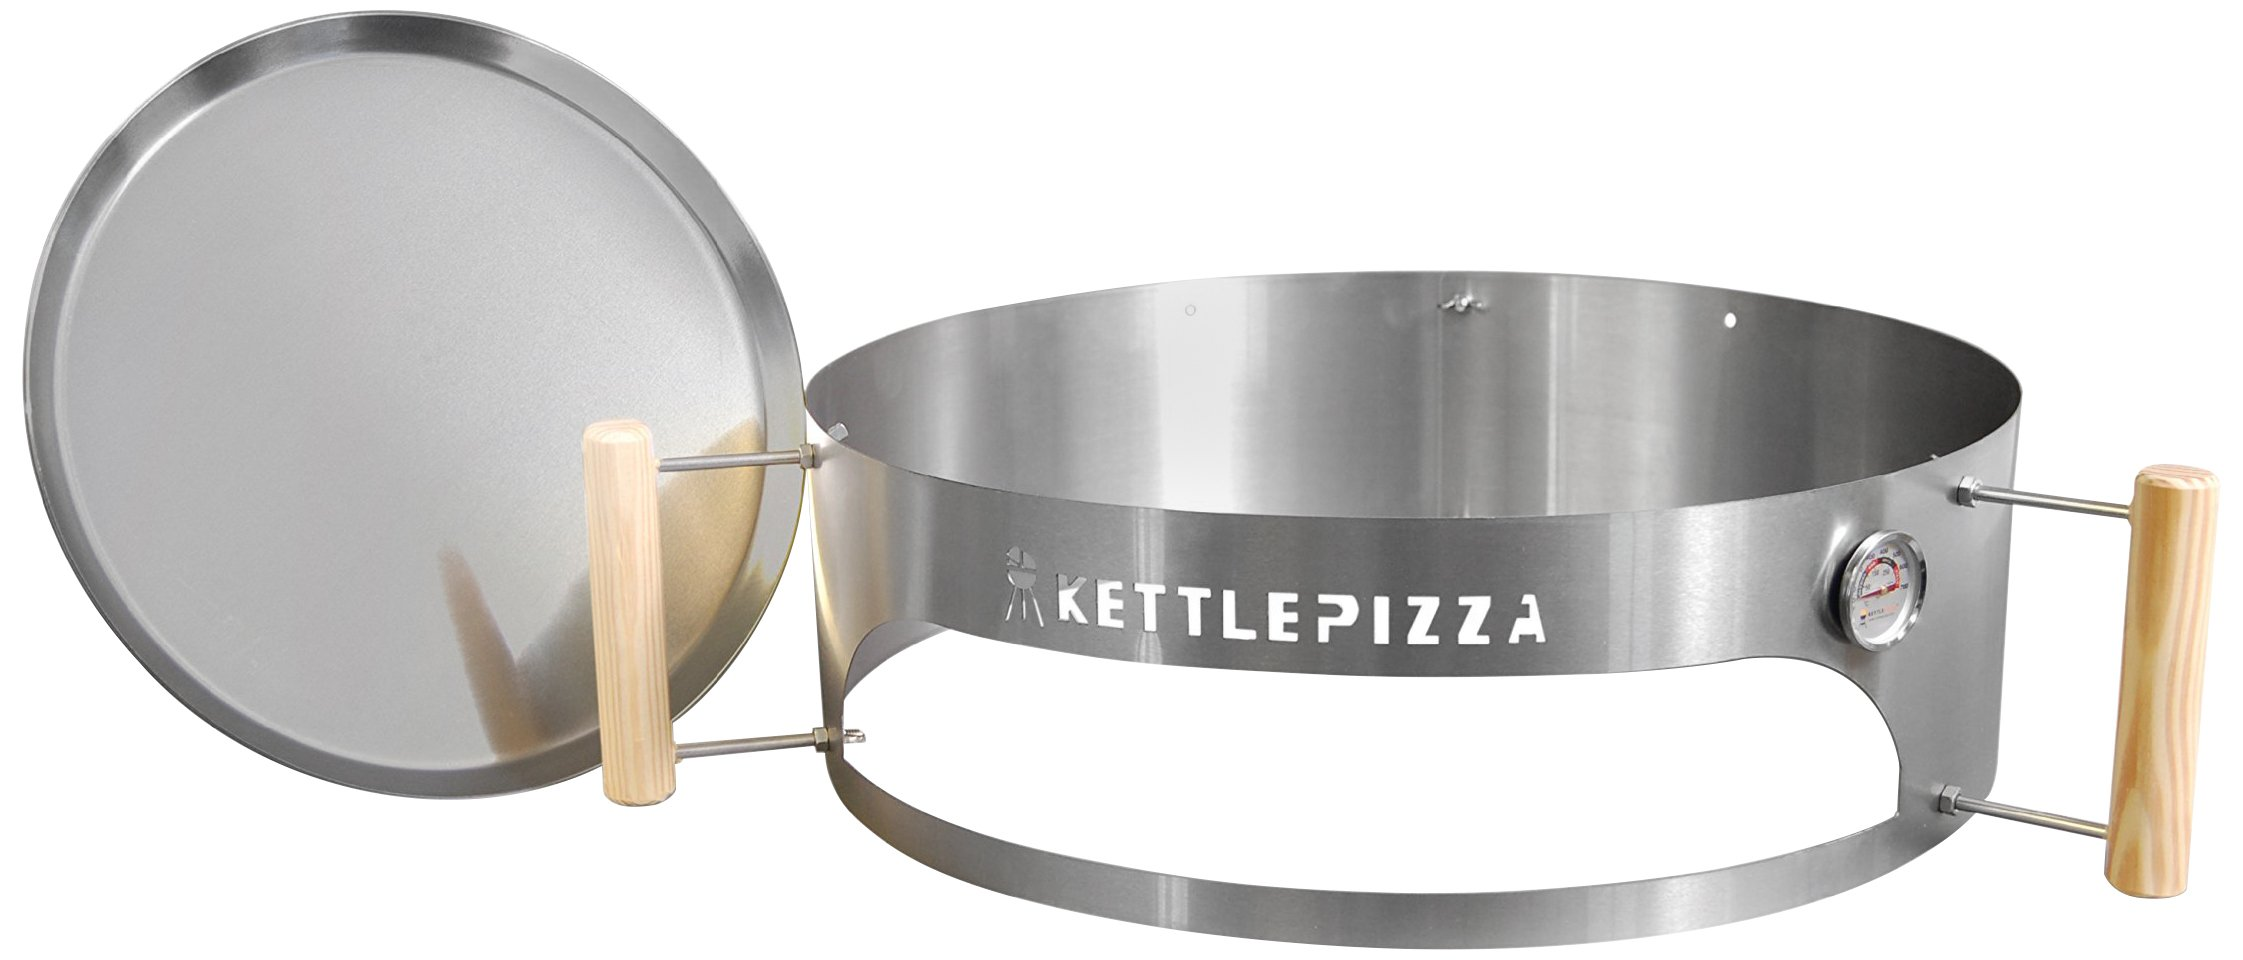 Made in USA KettlePizza Basic Pizza Oven Kit for 18.5 and 22.5 Inch Kettle Grills, KPB-22 by Kettle Pizza (Image #1)